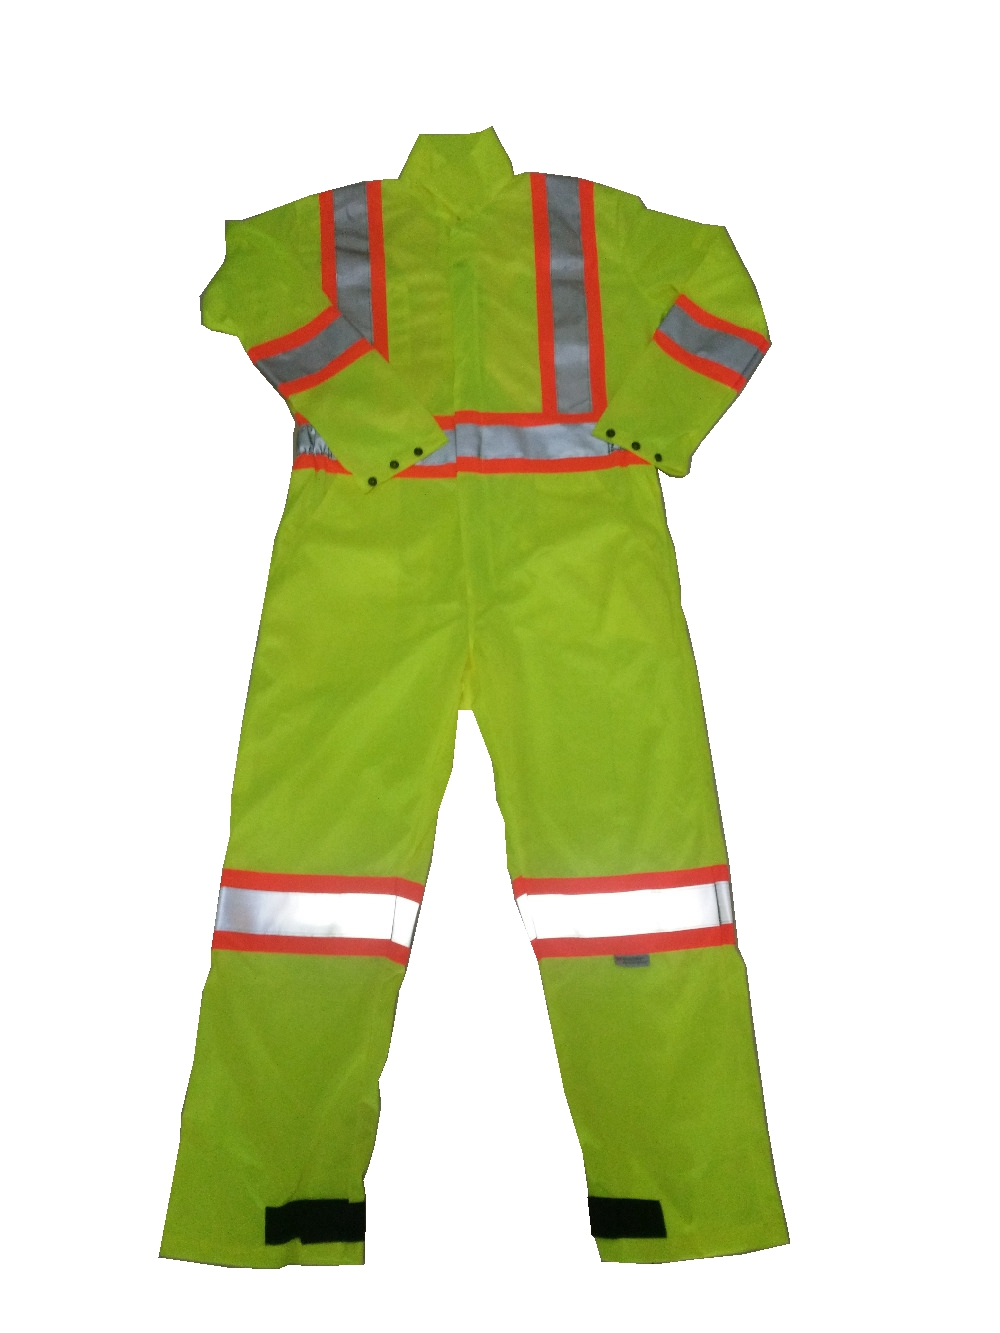 Fluorescence Yellow High Visibility Safety workwear Hi Viz Work Coat coverall workwear coveralls suits раннее развитие умница что такое любовь